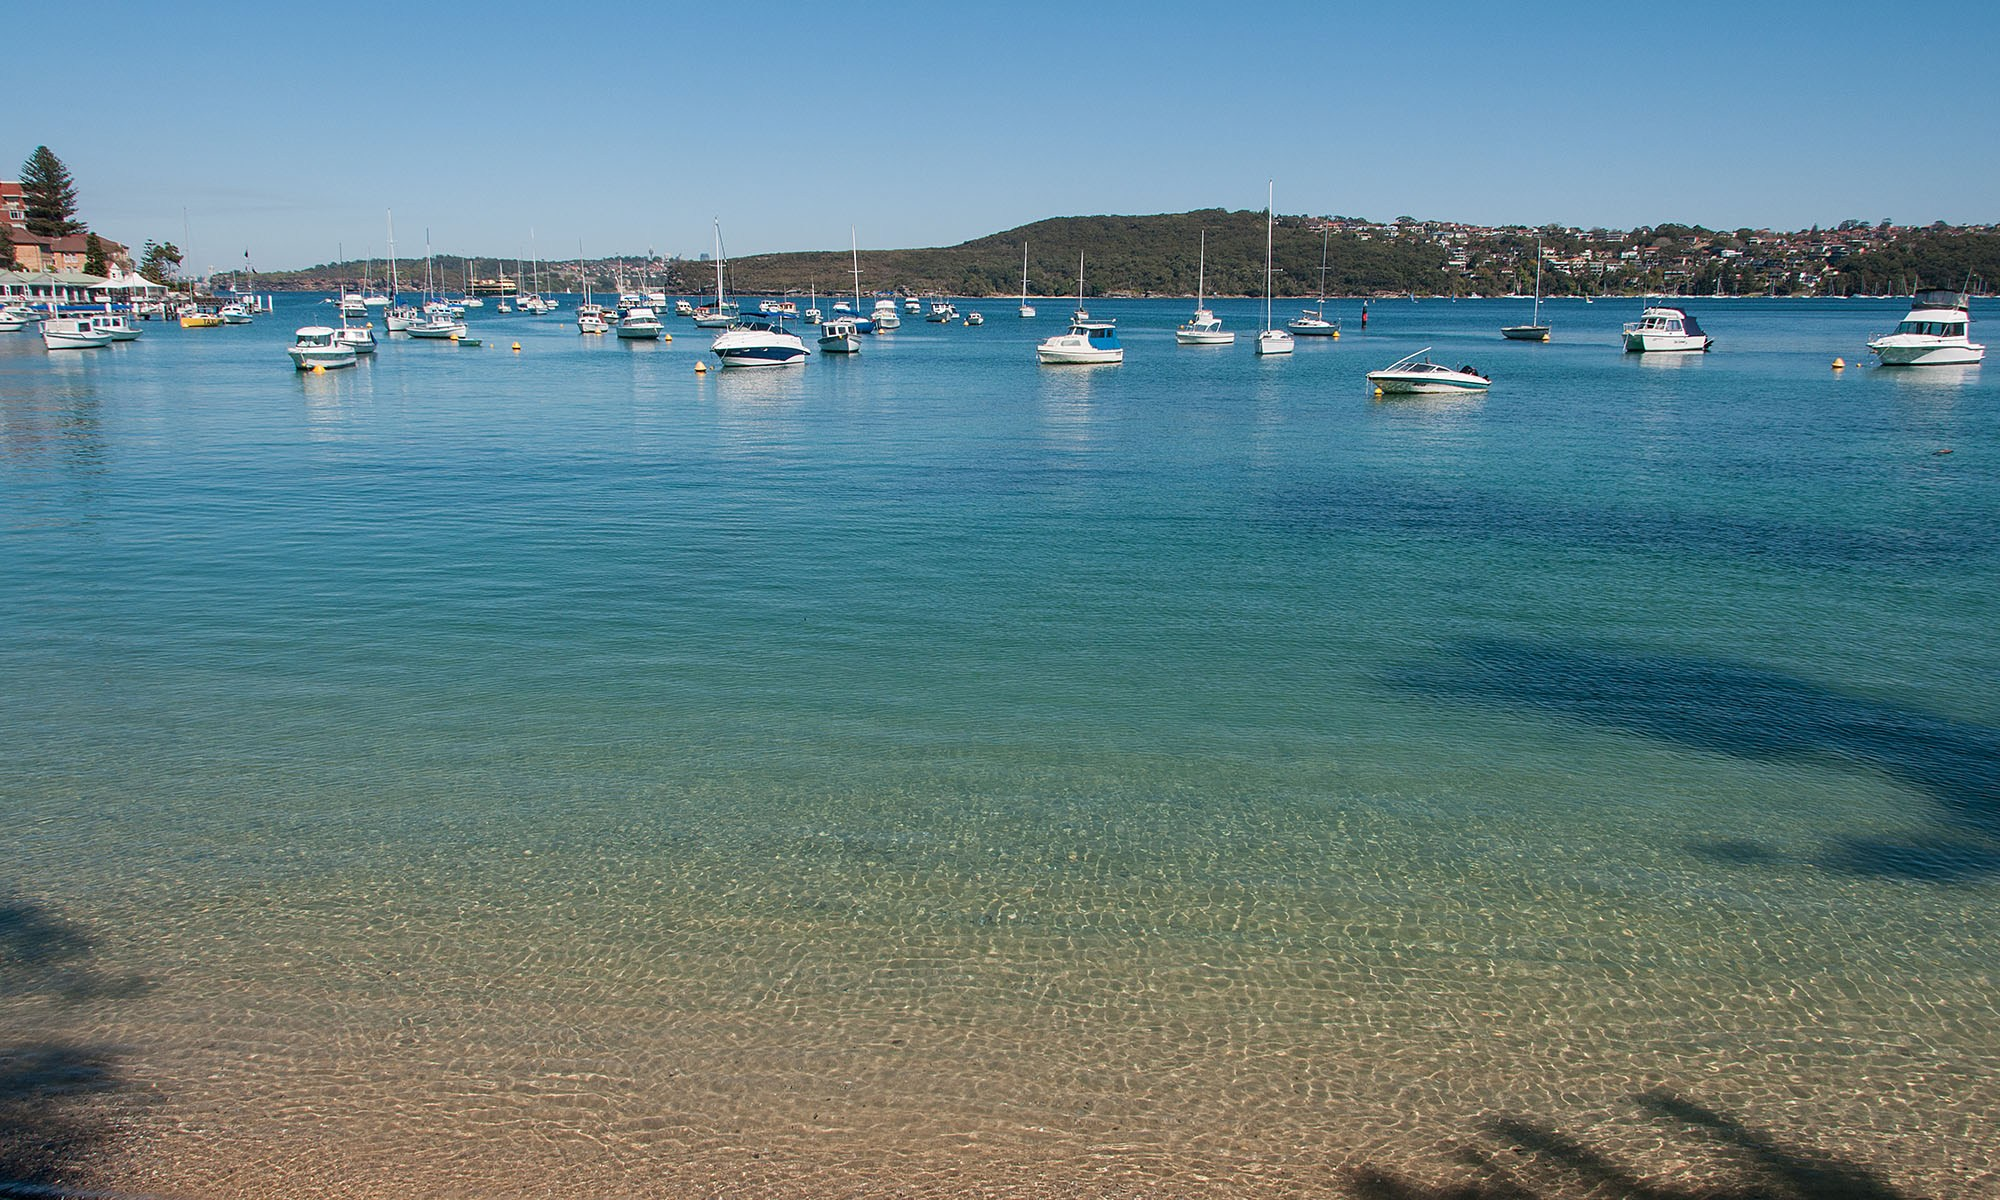 Manly Cove